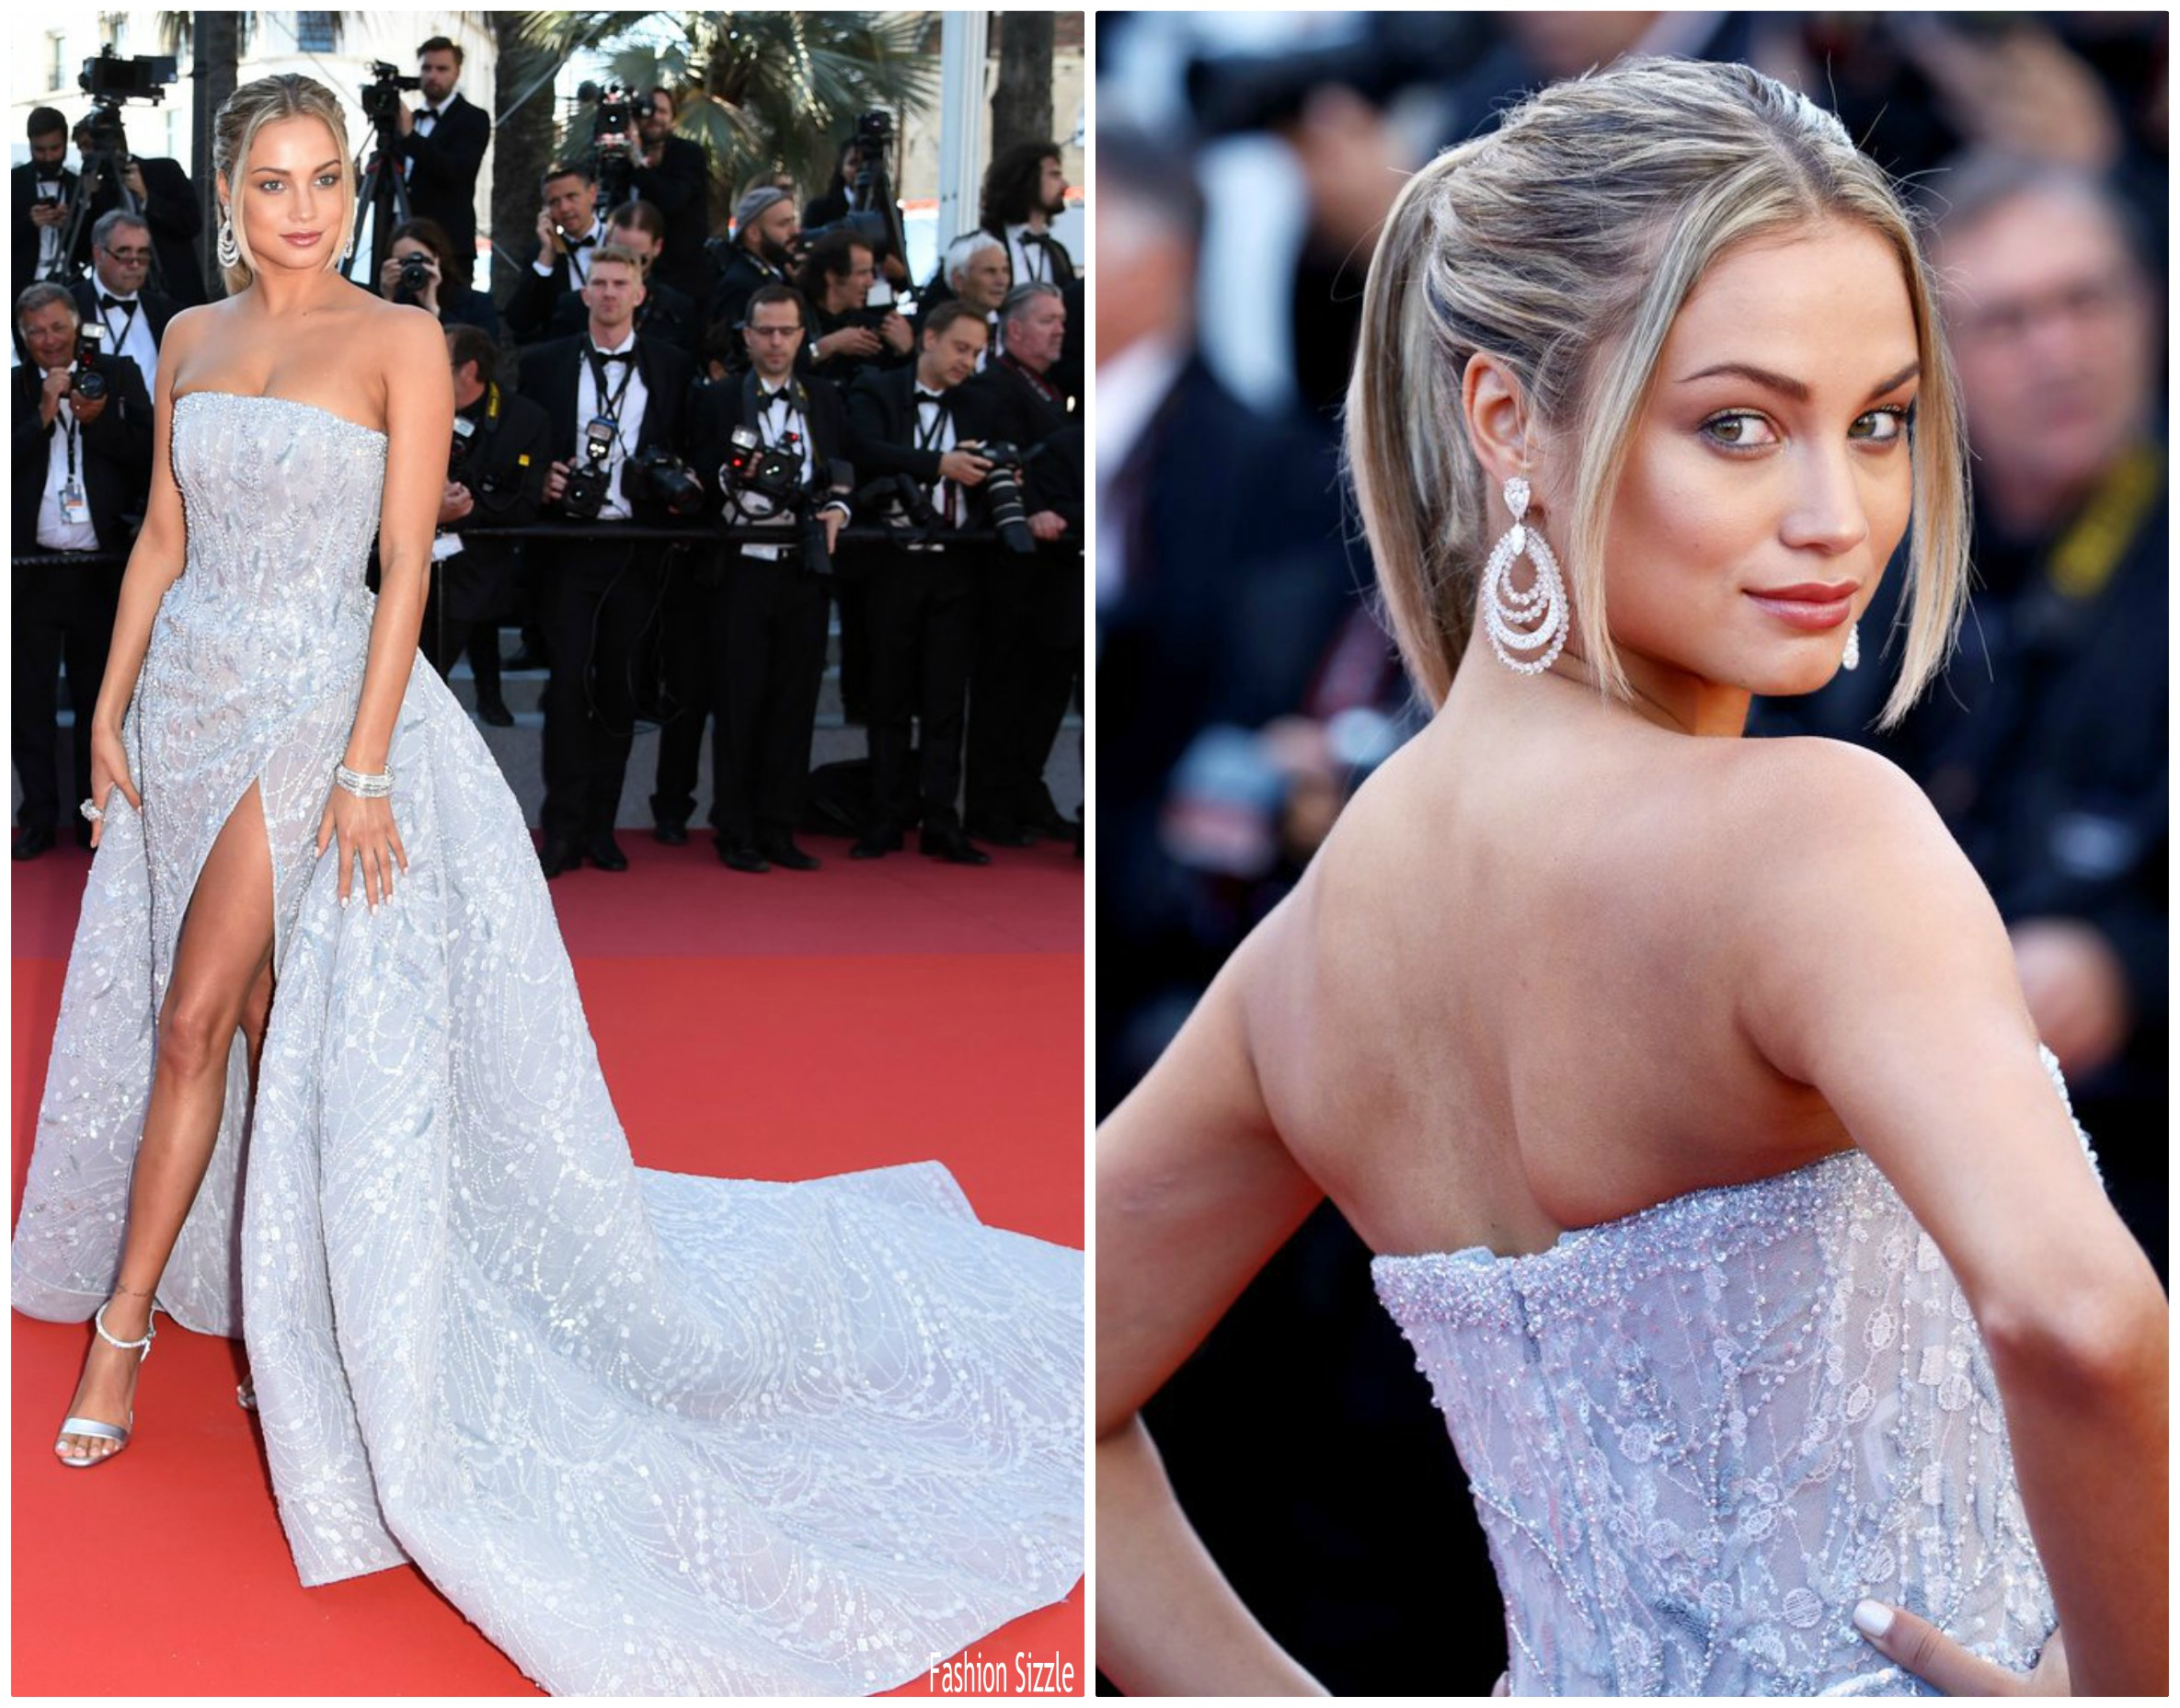 rose-bertram-in-michael-cinco-capharnaum-cannes-film-festival-premiere